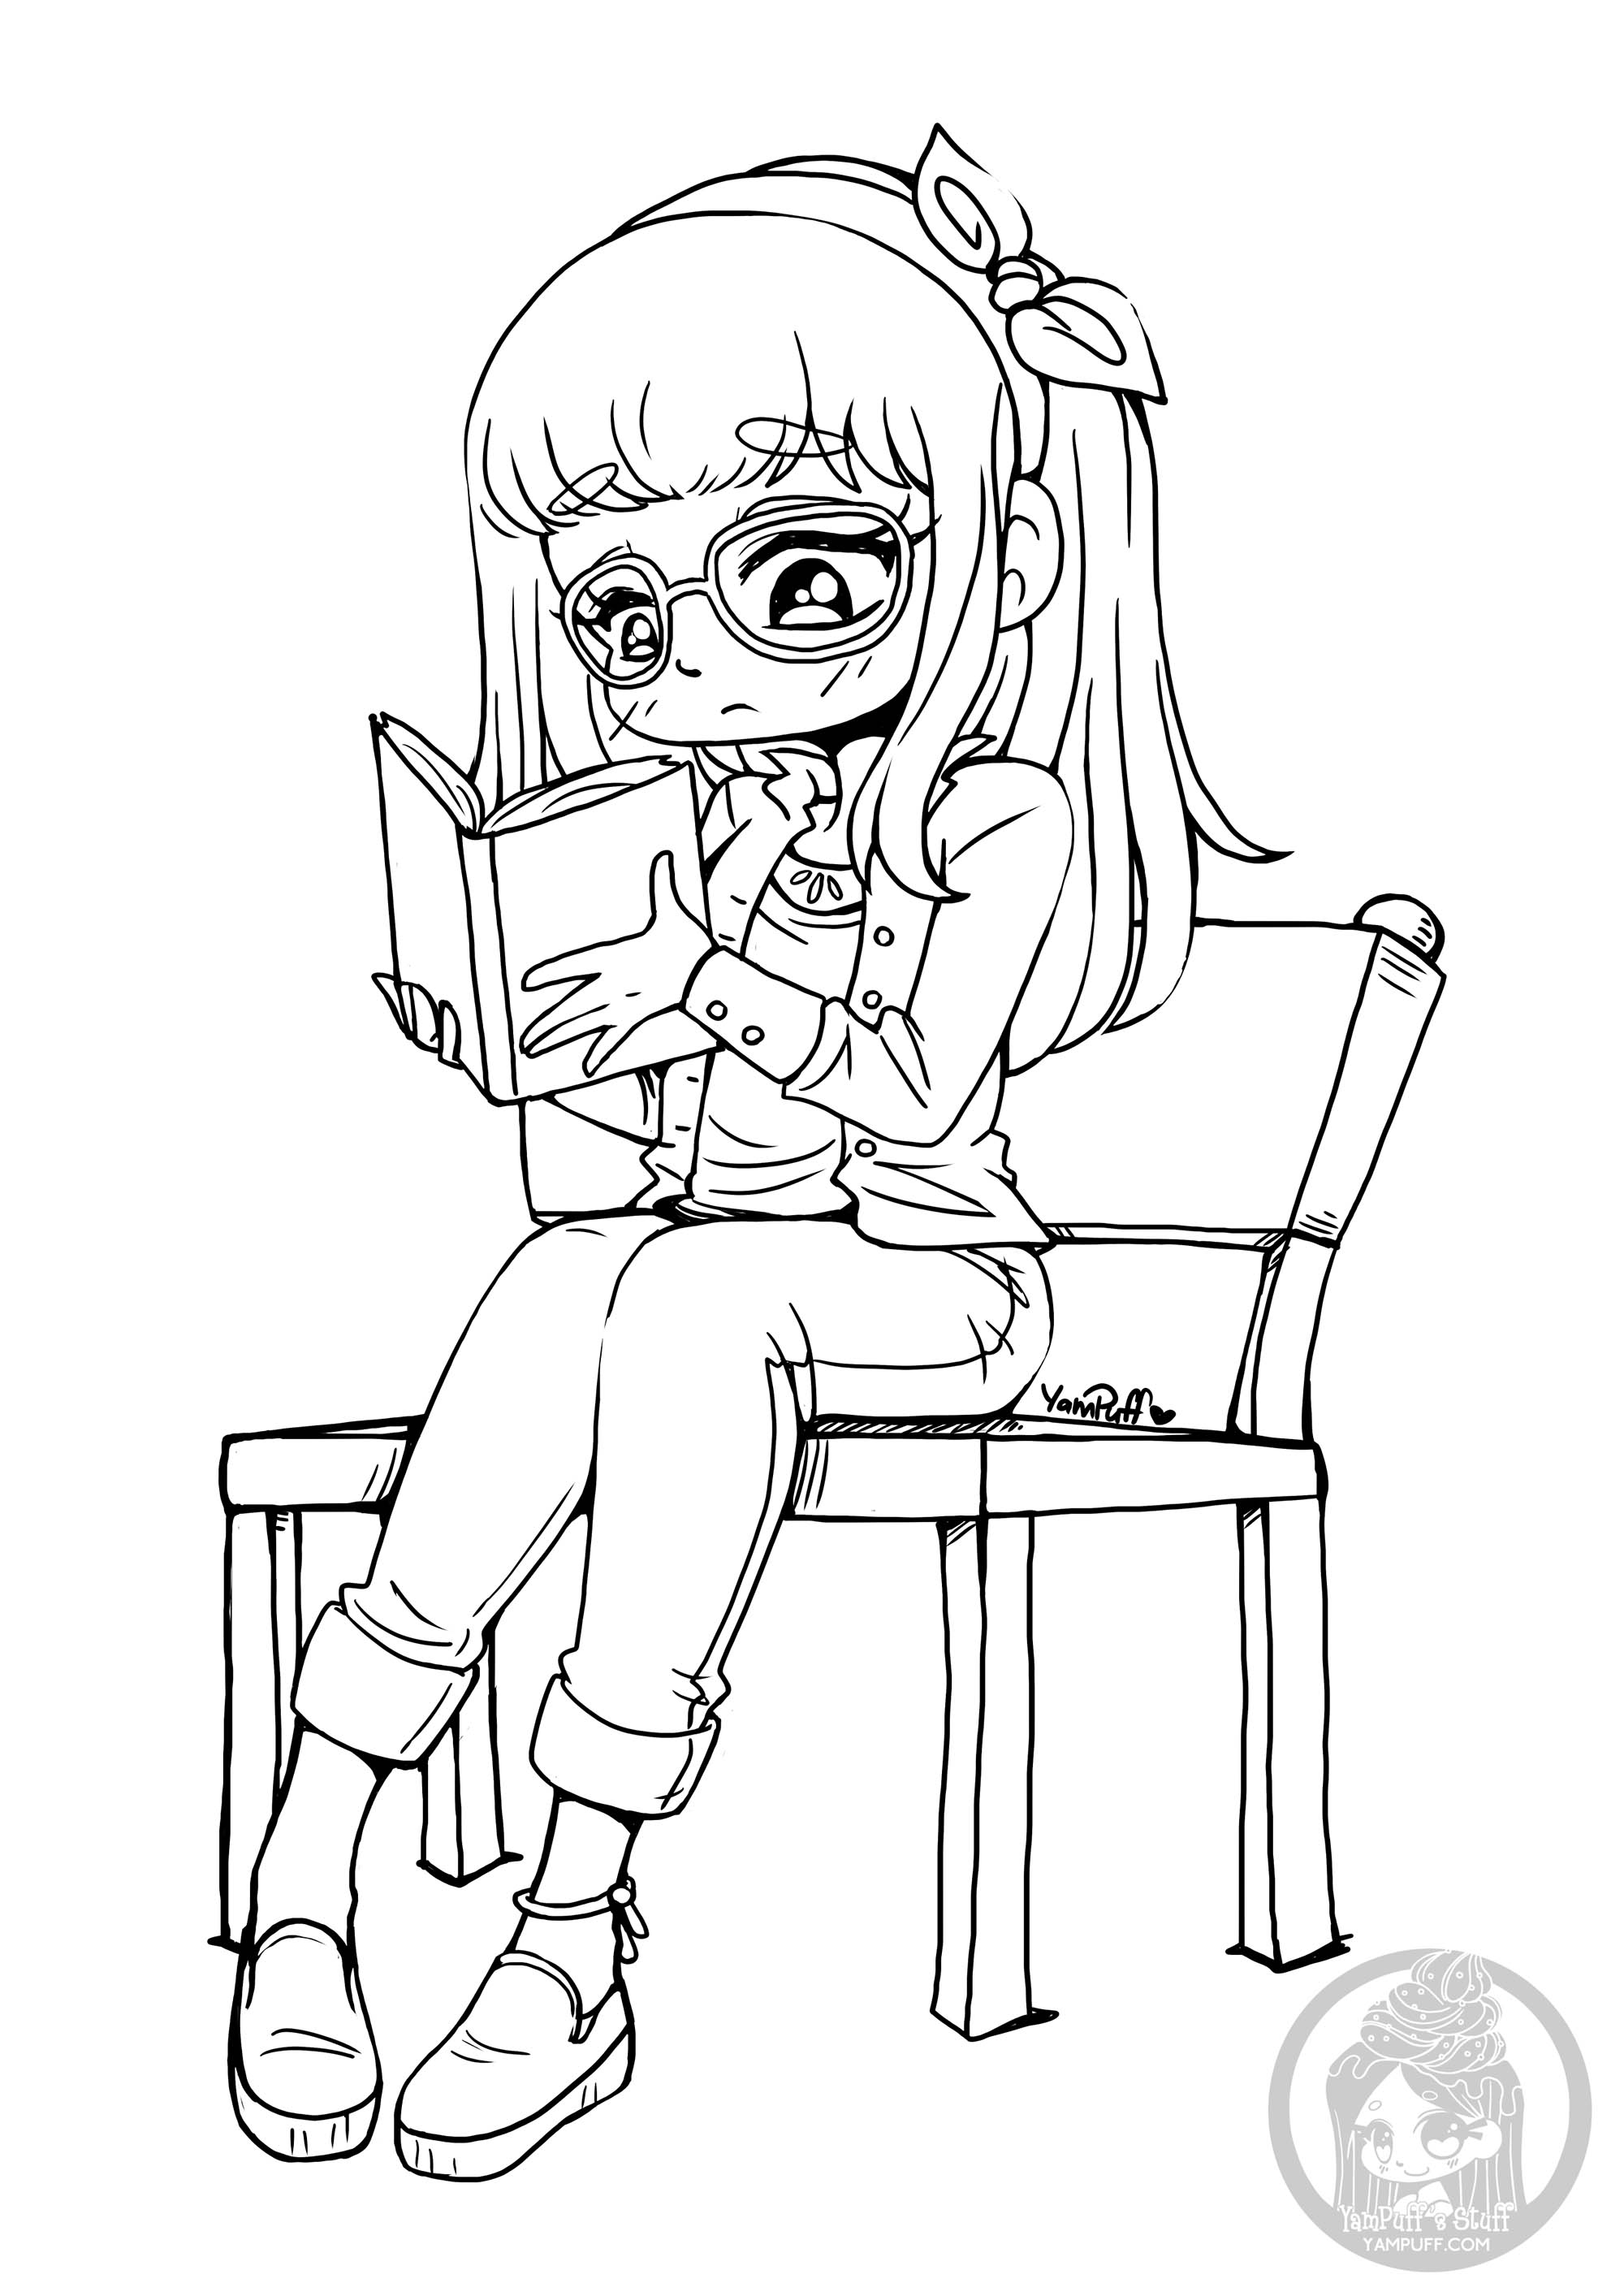 Color her kindly so you don't disturb her while she reads !